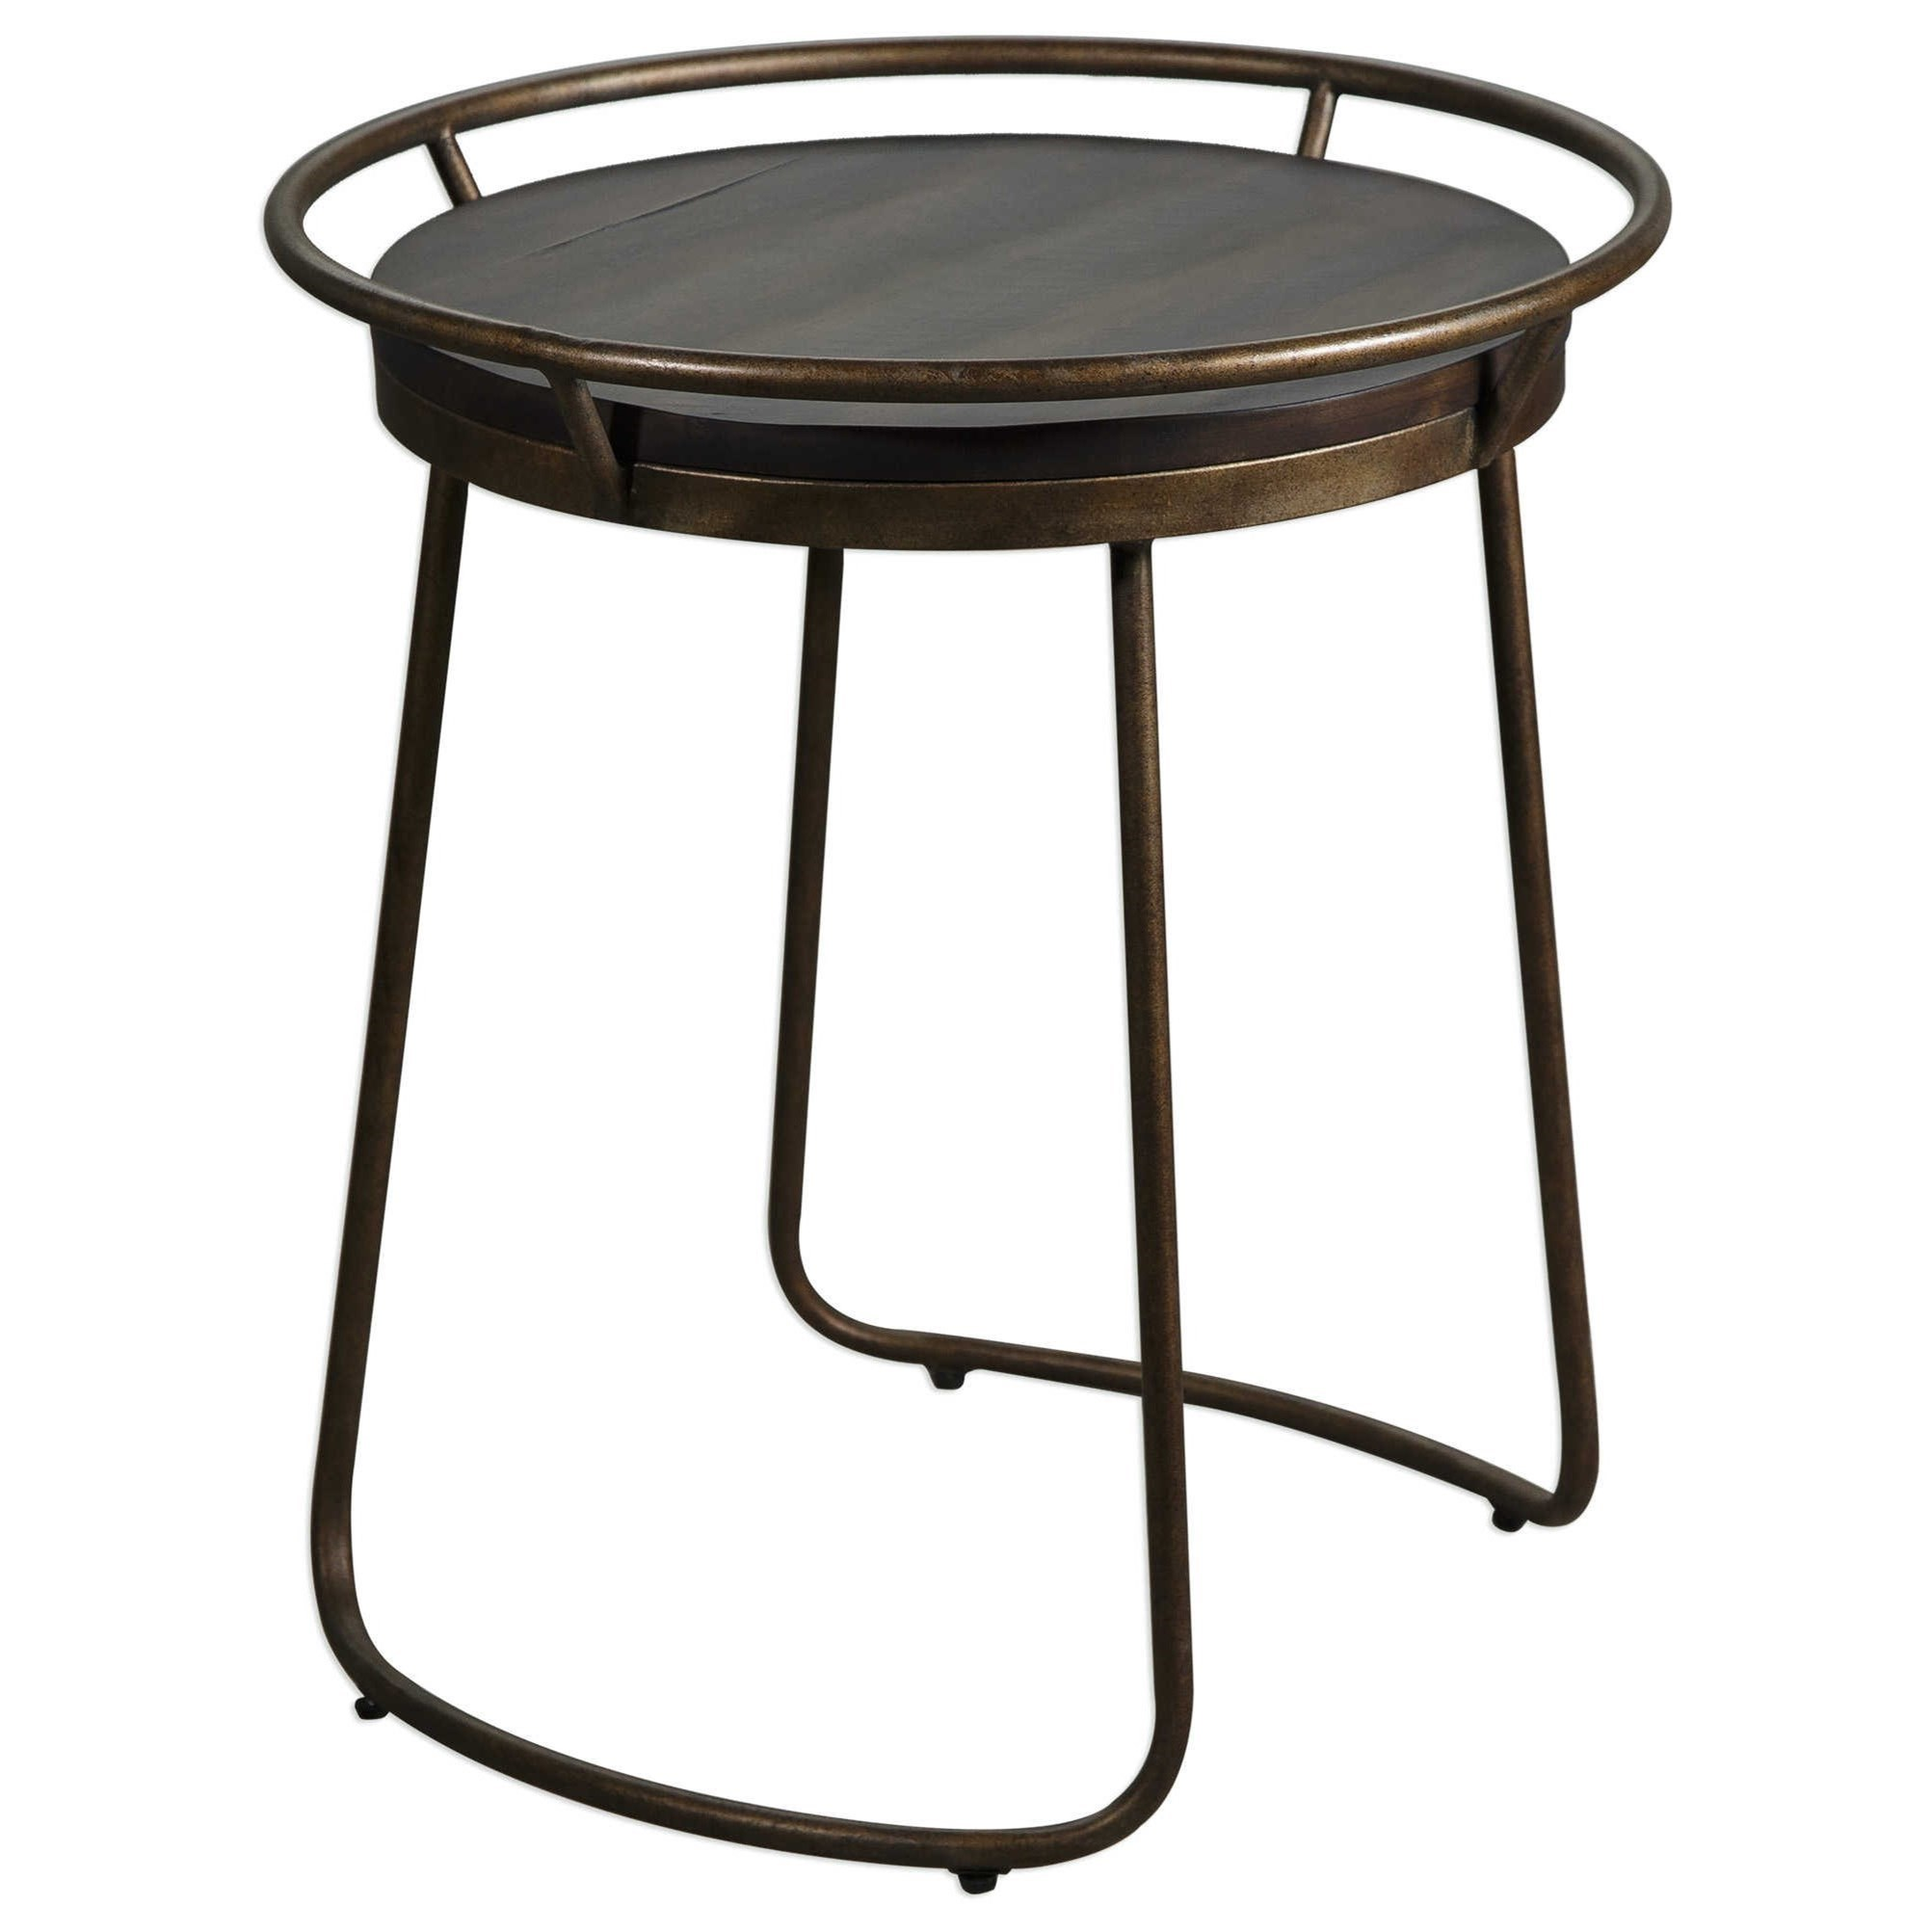 uttermost accent furniture rayen round accent table   darvin furniture   end tables uttermost accent furniture rayen round accent table   darvin      rh   darvin